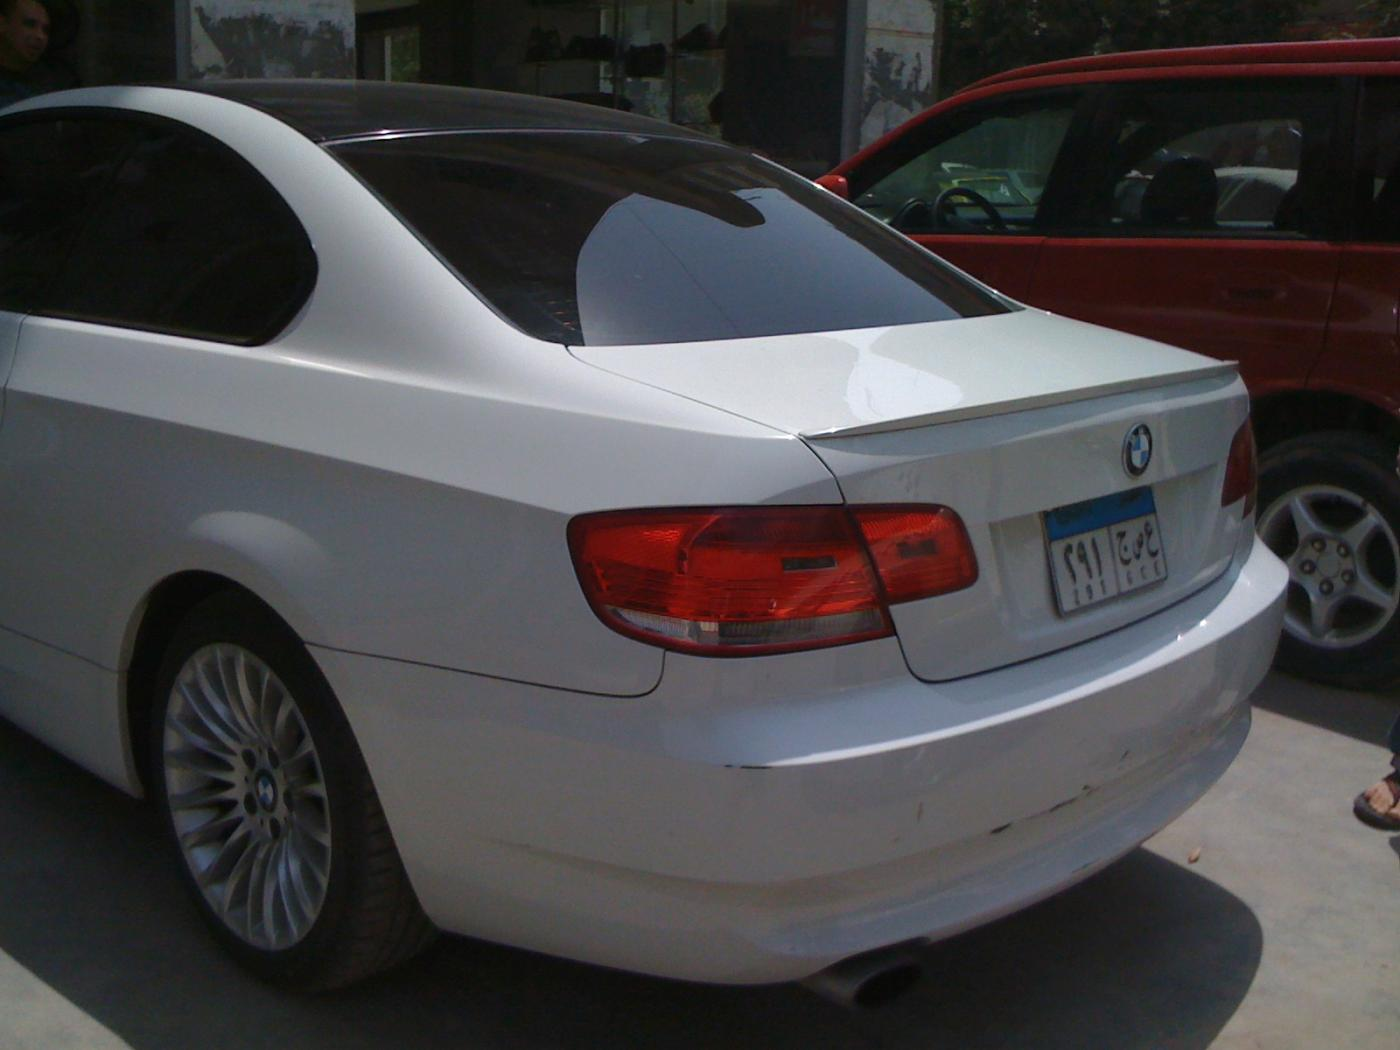 Project M35i (Creating your own BMW!)